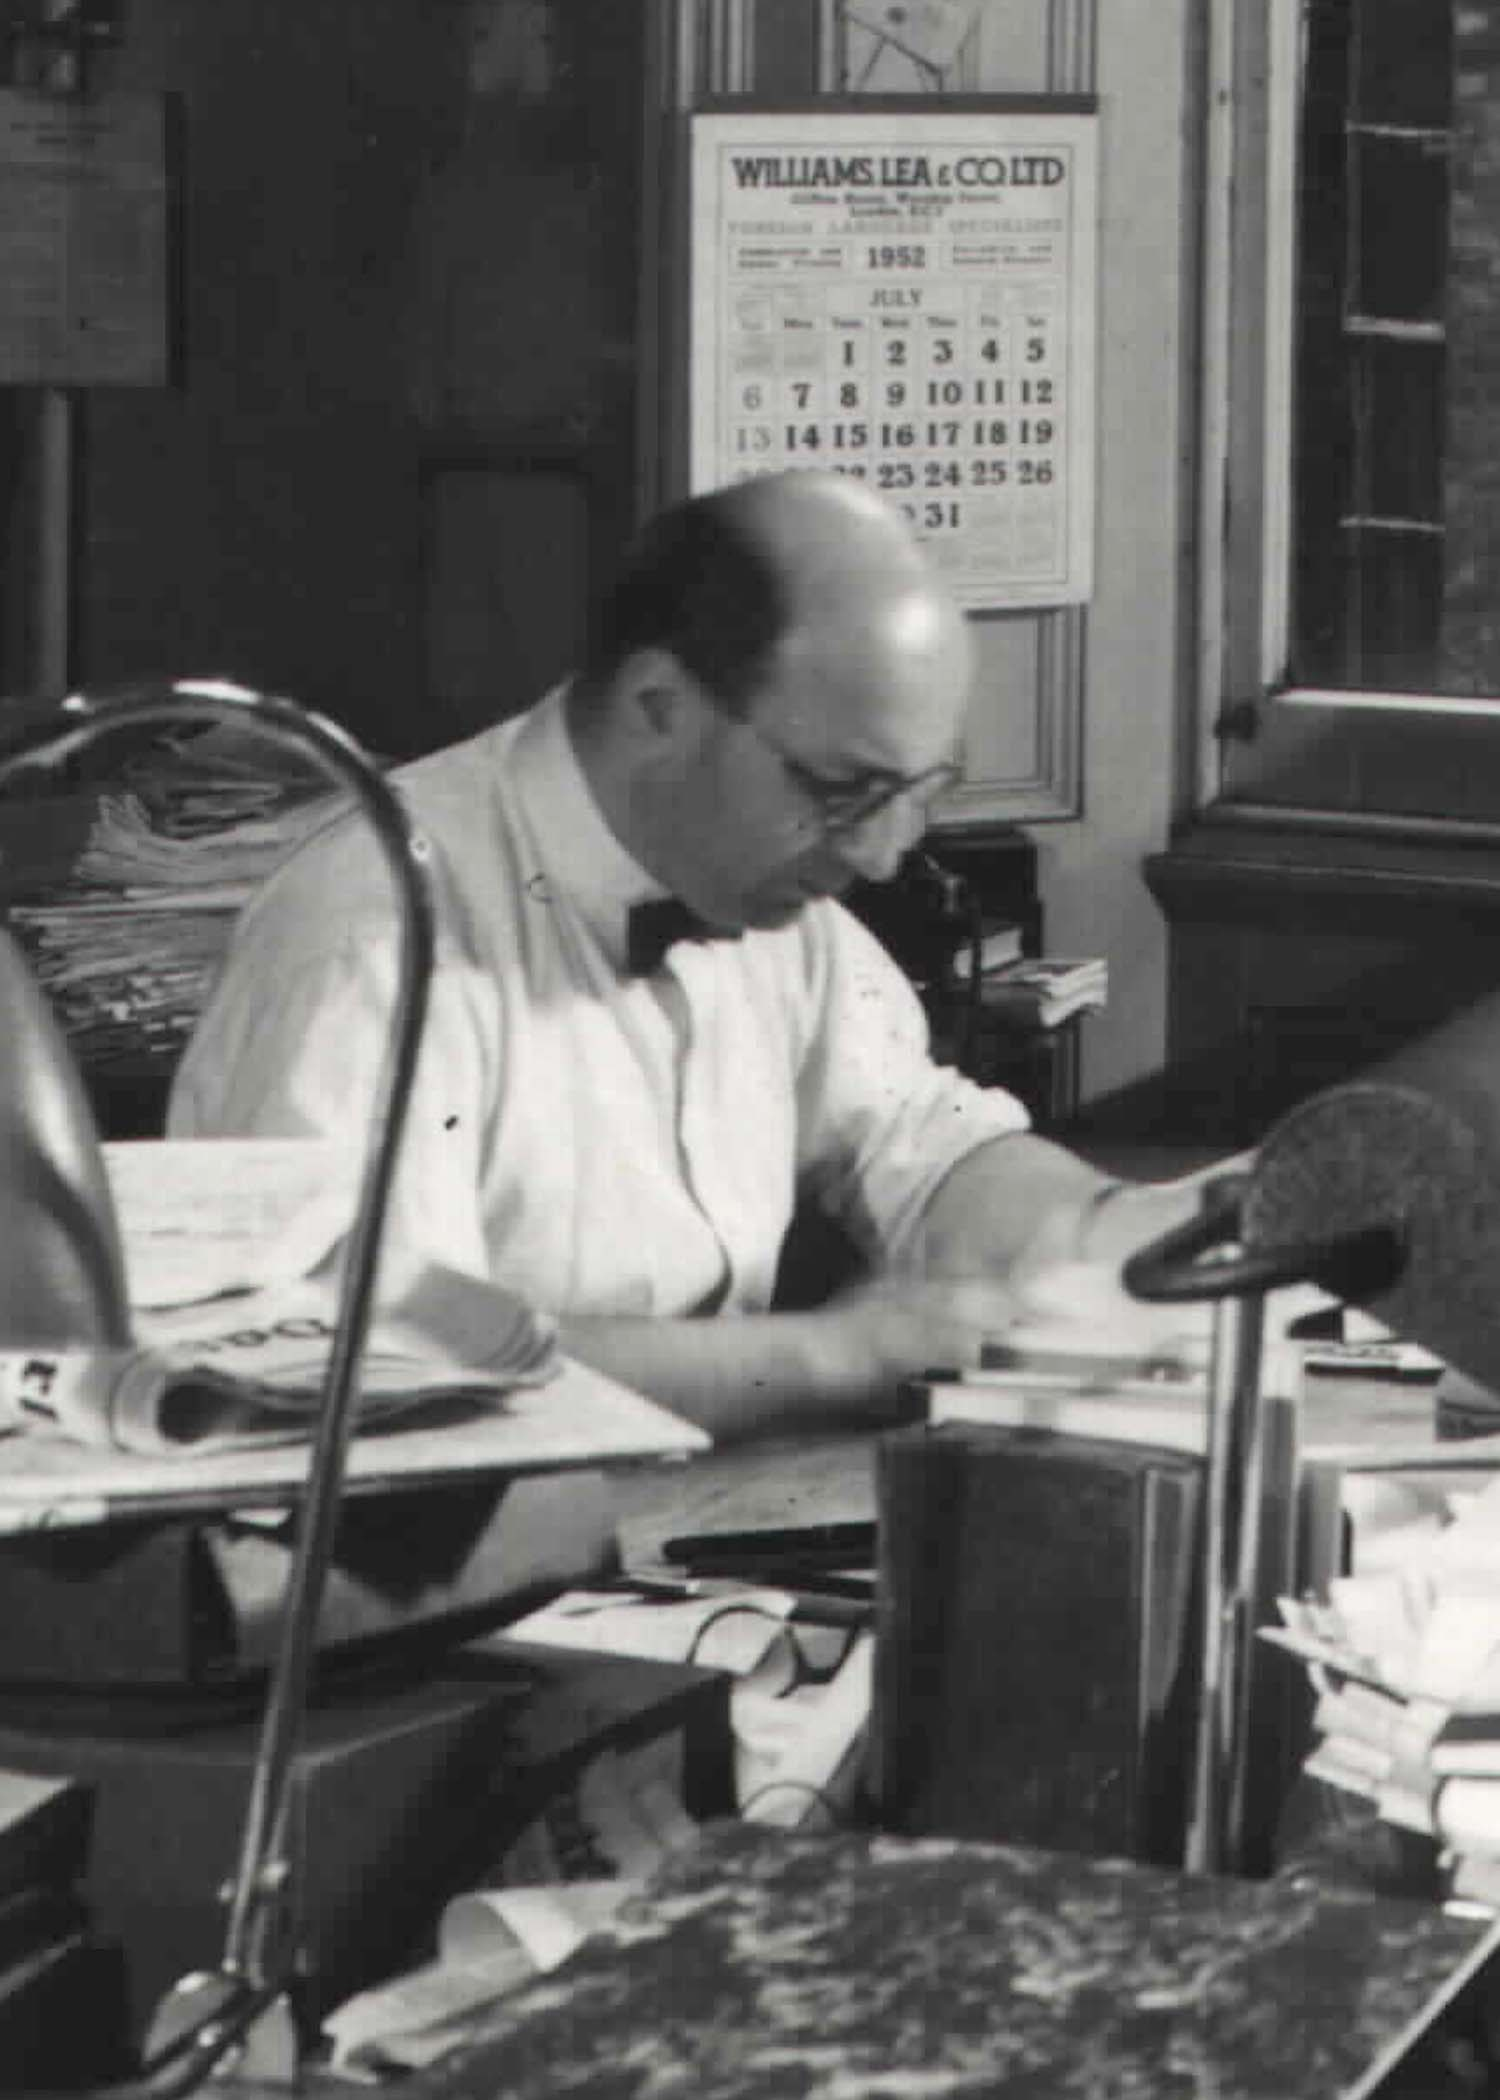 Black and white photograph of man sitting at desk